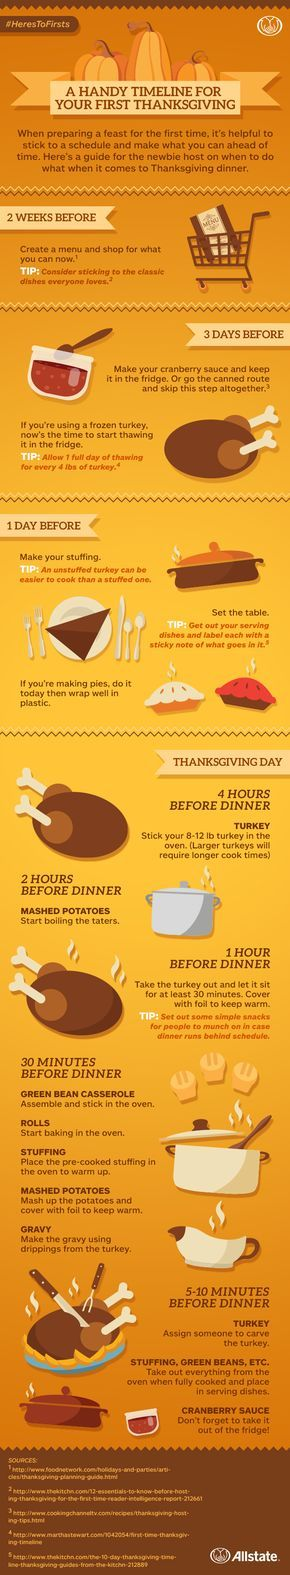 Put those party hosting nerves at ease with this helpful timeline for hosting your first Thanksgiving dinner.